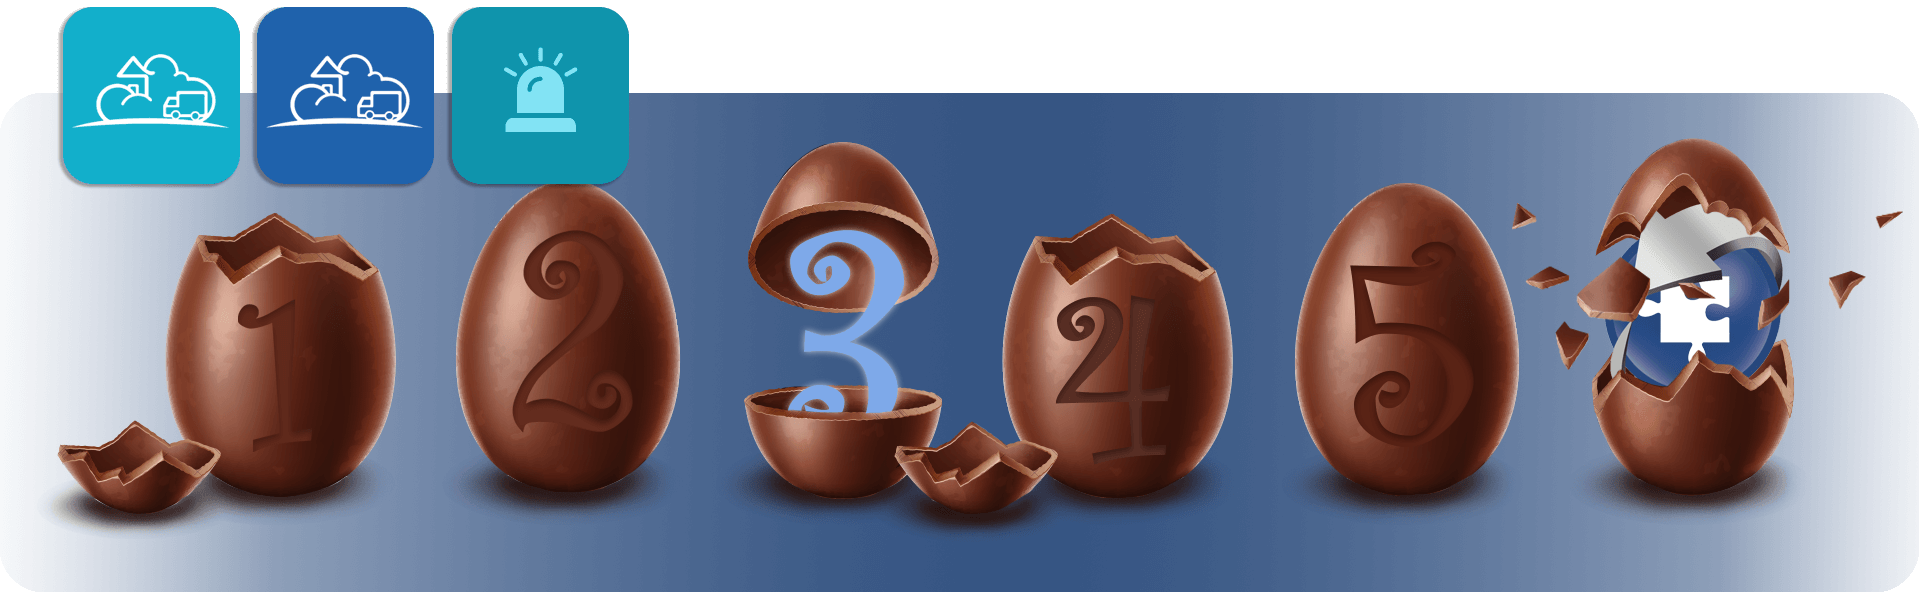 chocolate easter egg countdown from 1-5